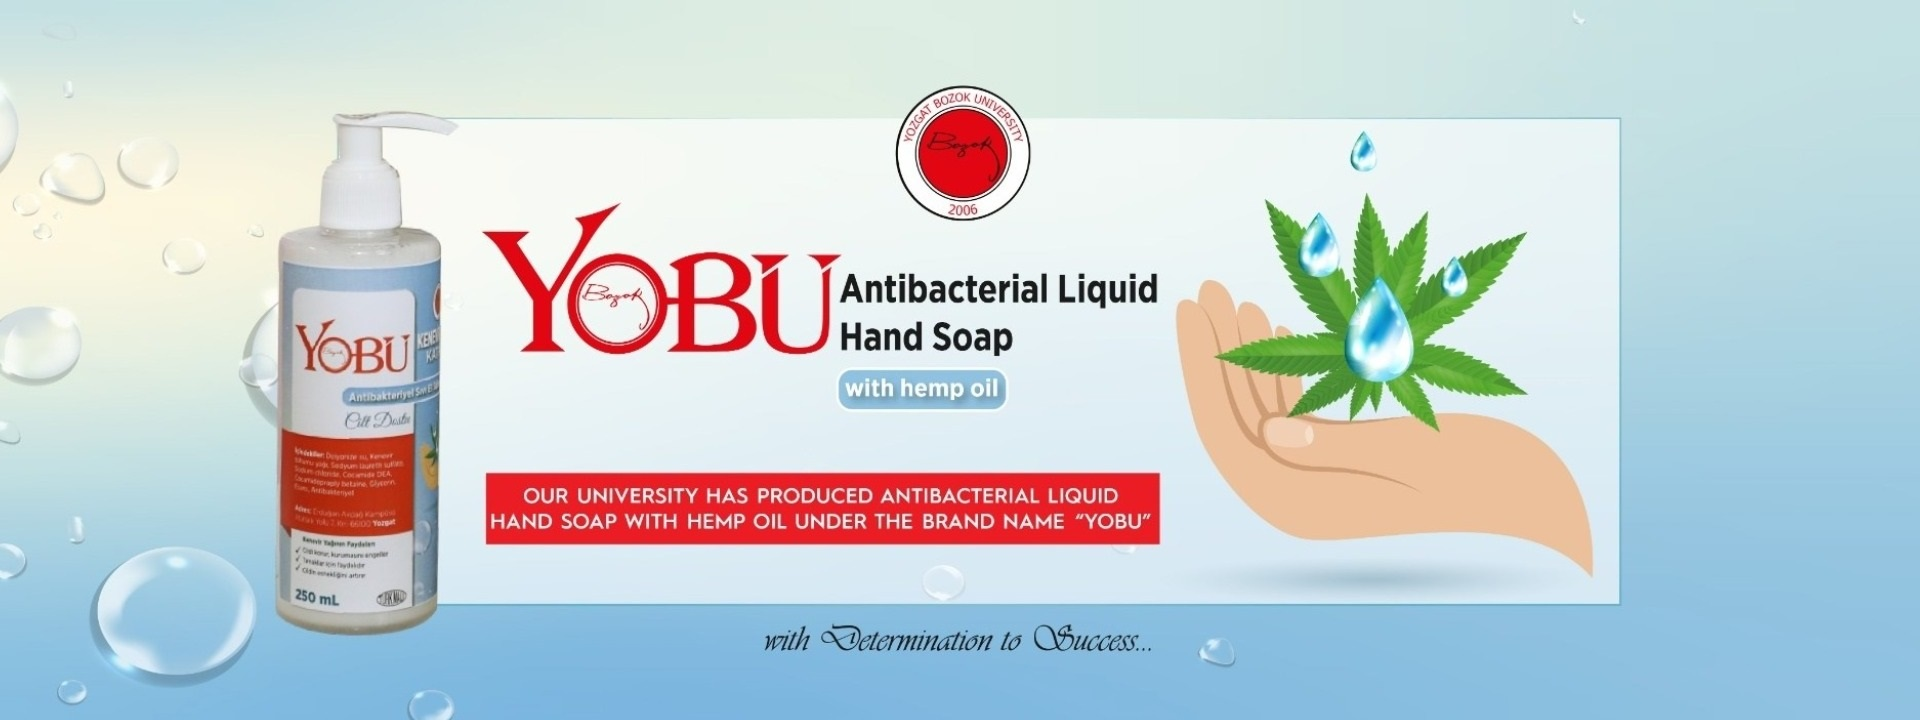 OUR UNIVERSITY HAS PRODUCED  ANTI-BACTERIAL LIQUID SOAP WITH HEMP OIL UNDER THE BRAND NAME ''YOBÜ''